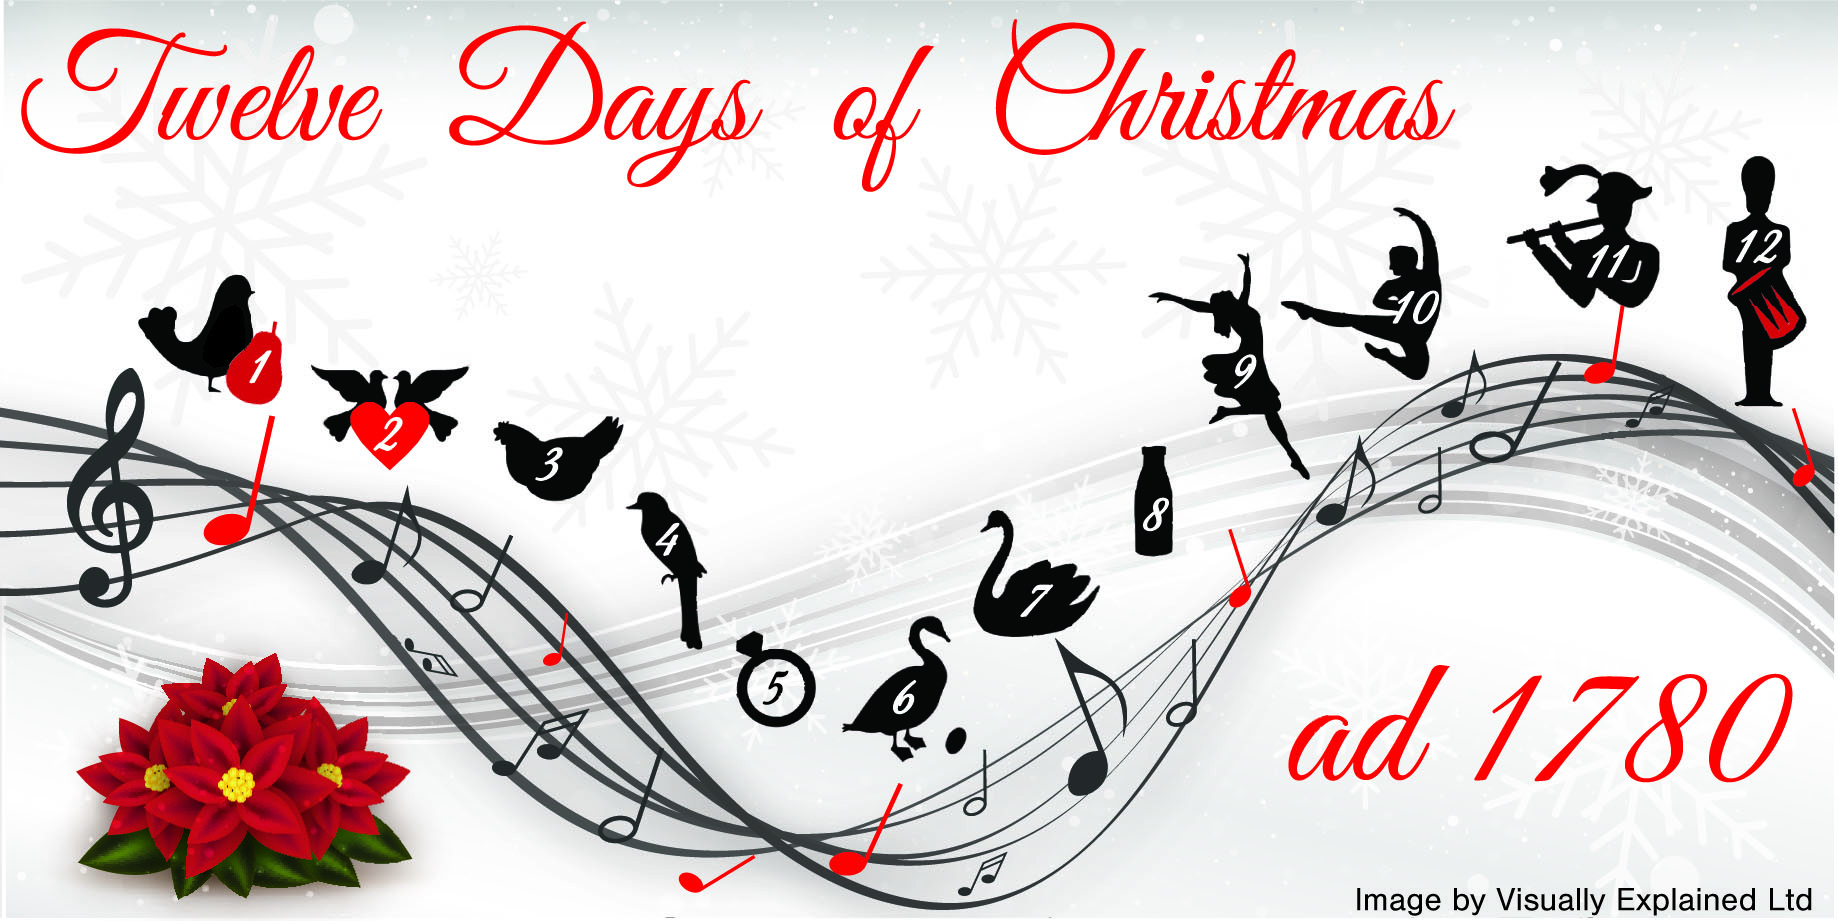 The 12 Days Of Christmas AA Editorial Services